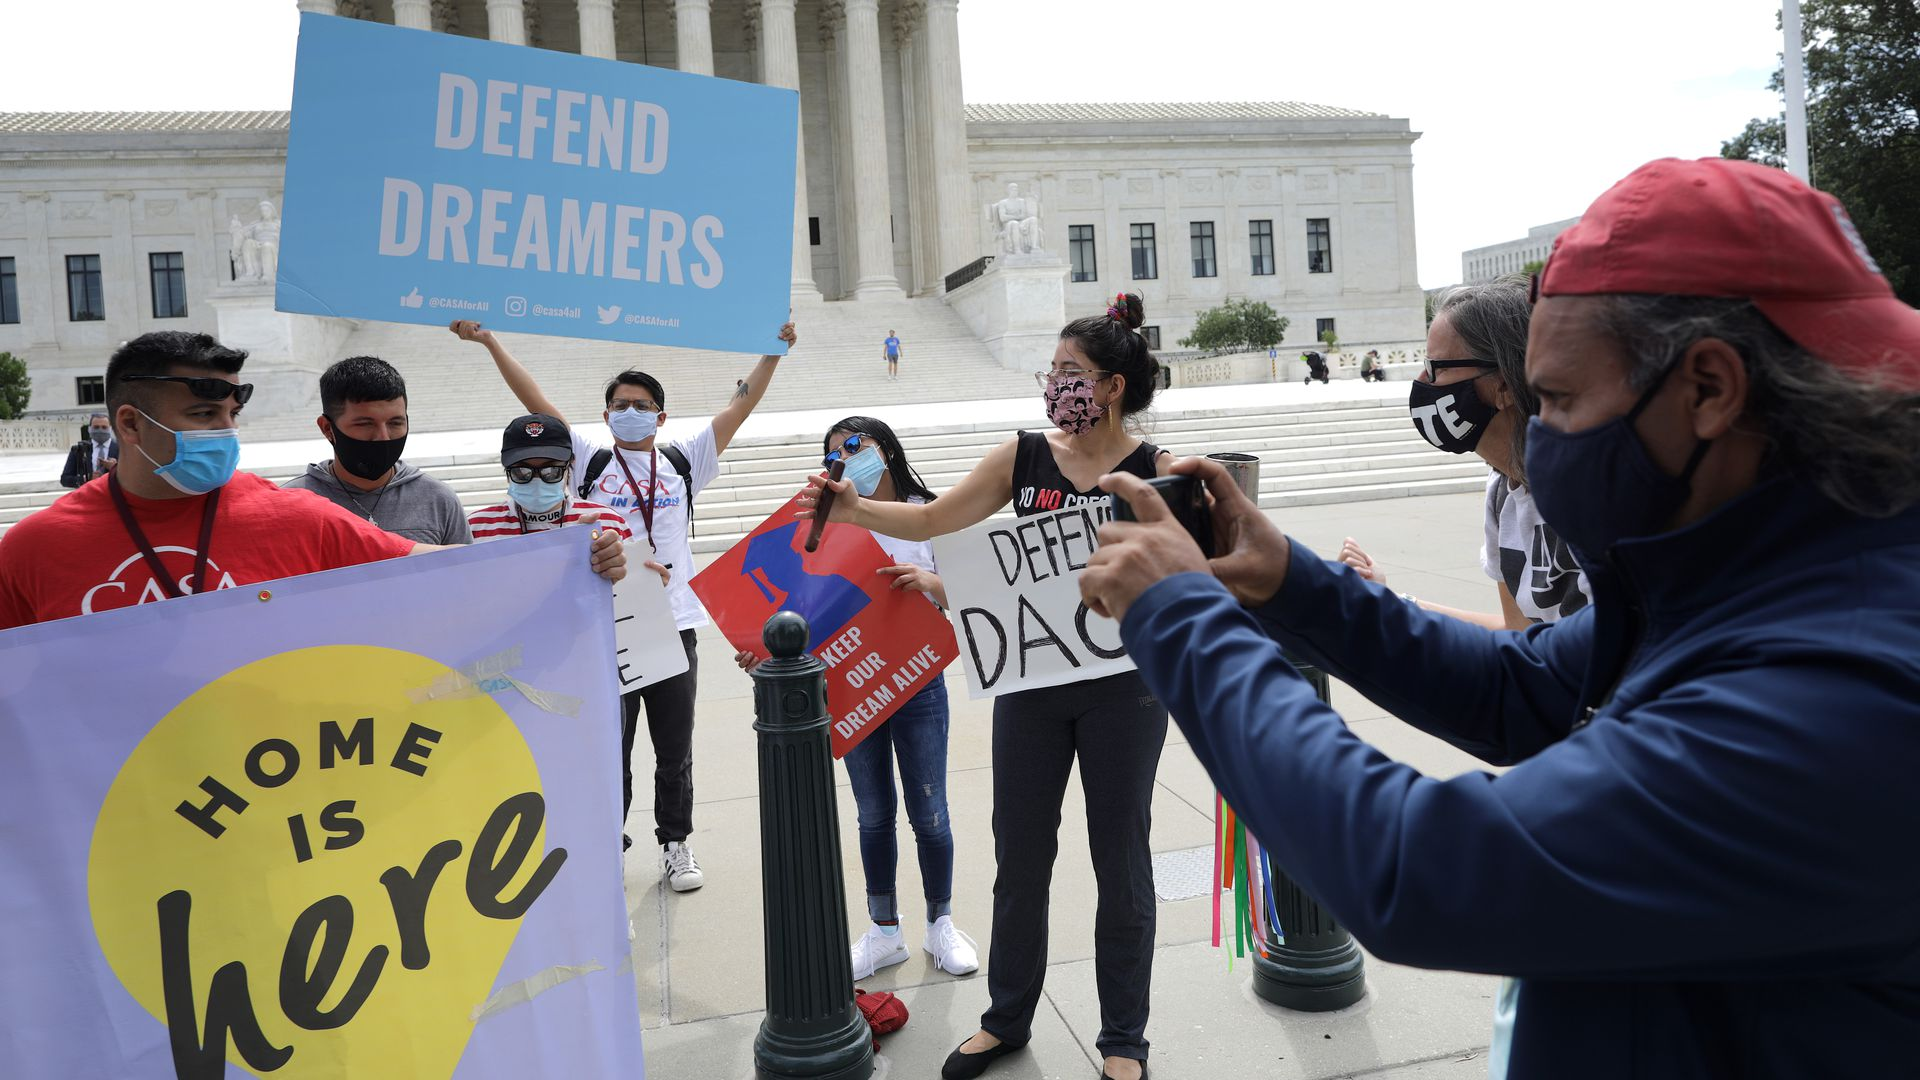 Democrats hope to tie immigration reform to next reconciliation push - Axios